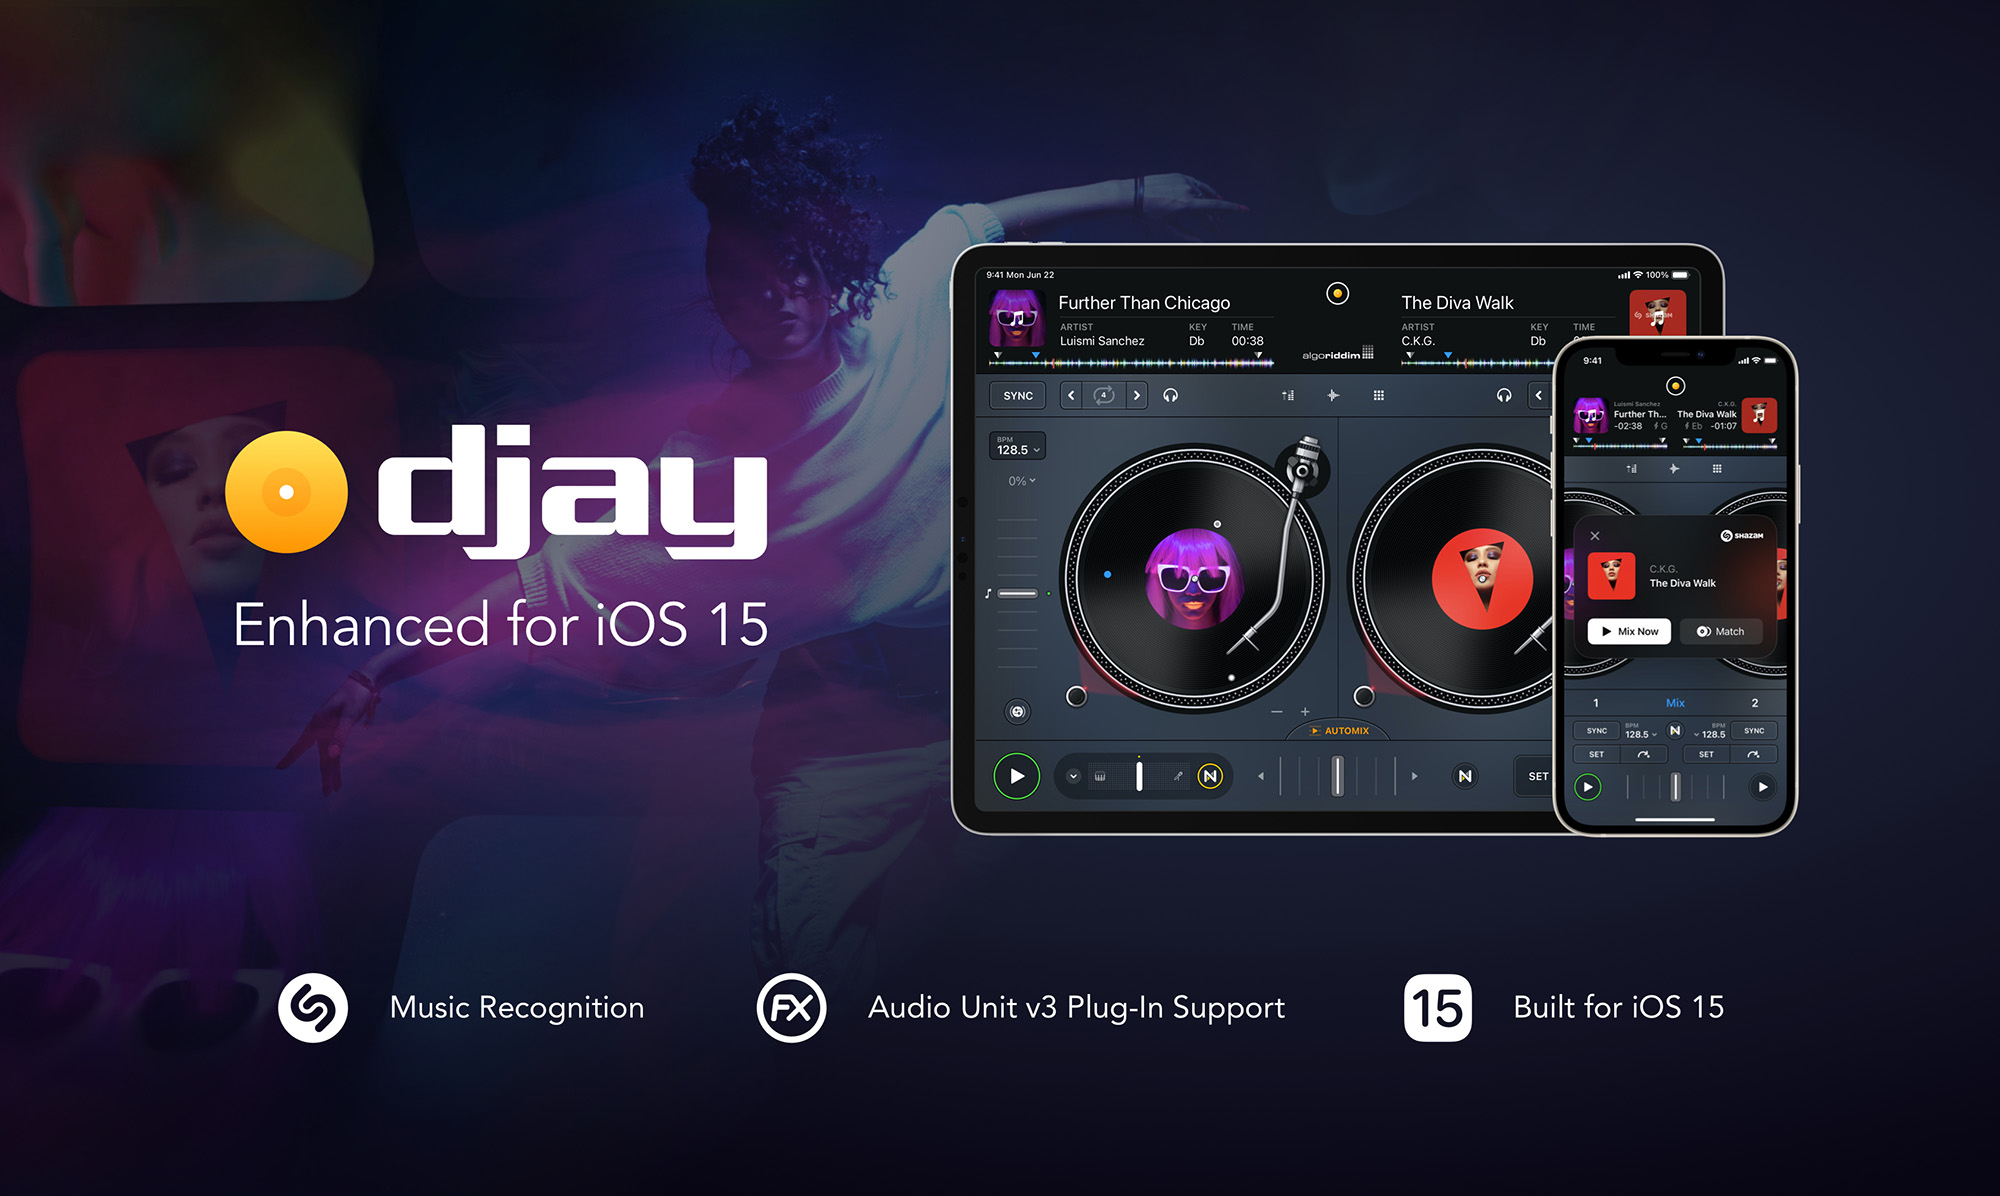 Algoriddim's djay iOS app uses Shazam to recognize and sync with live music